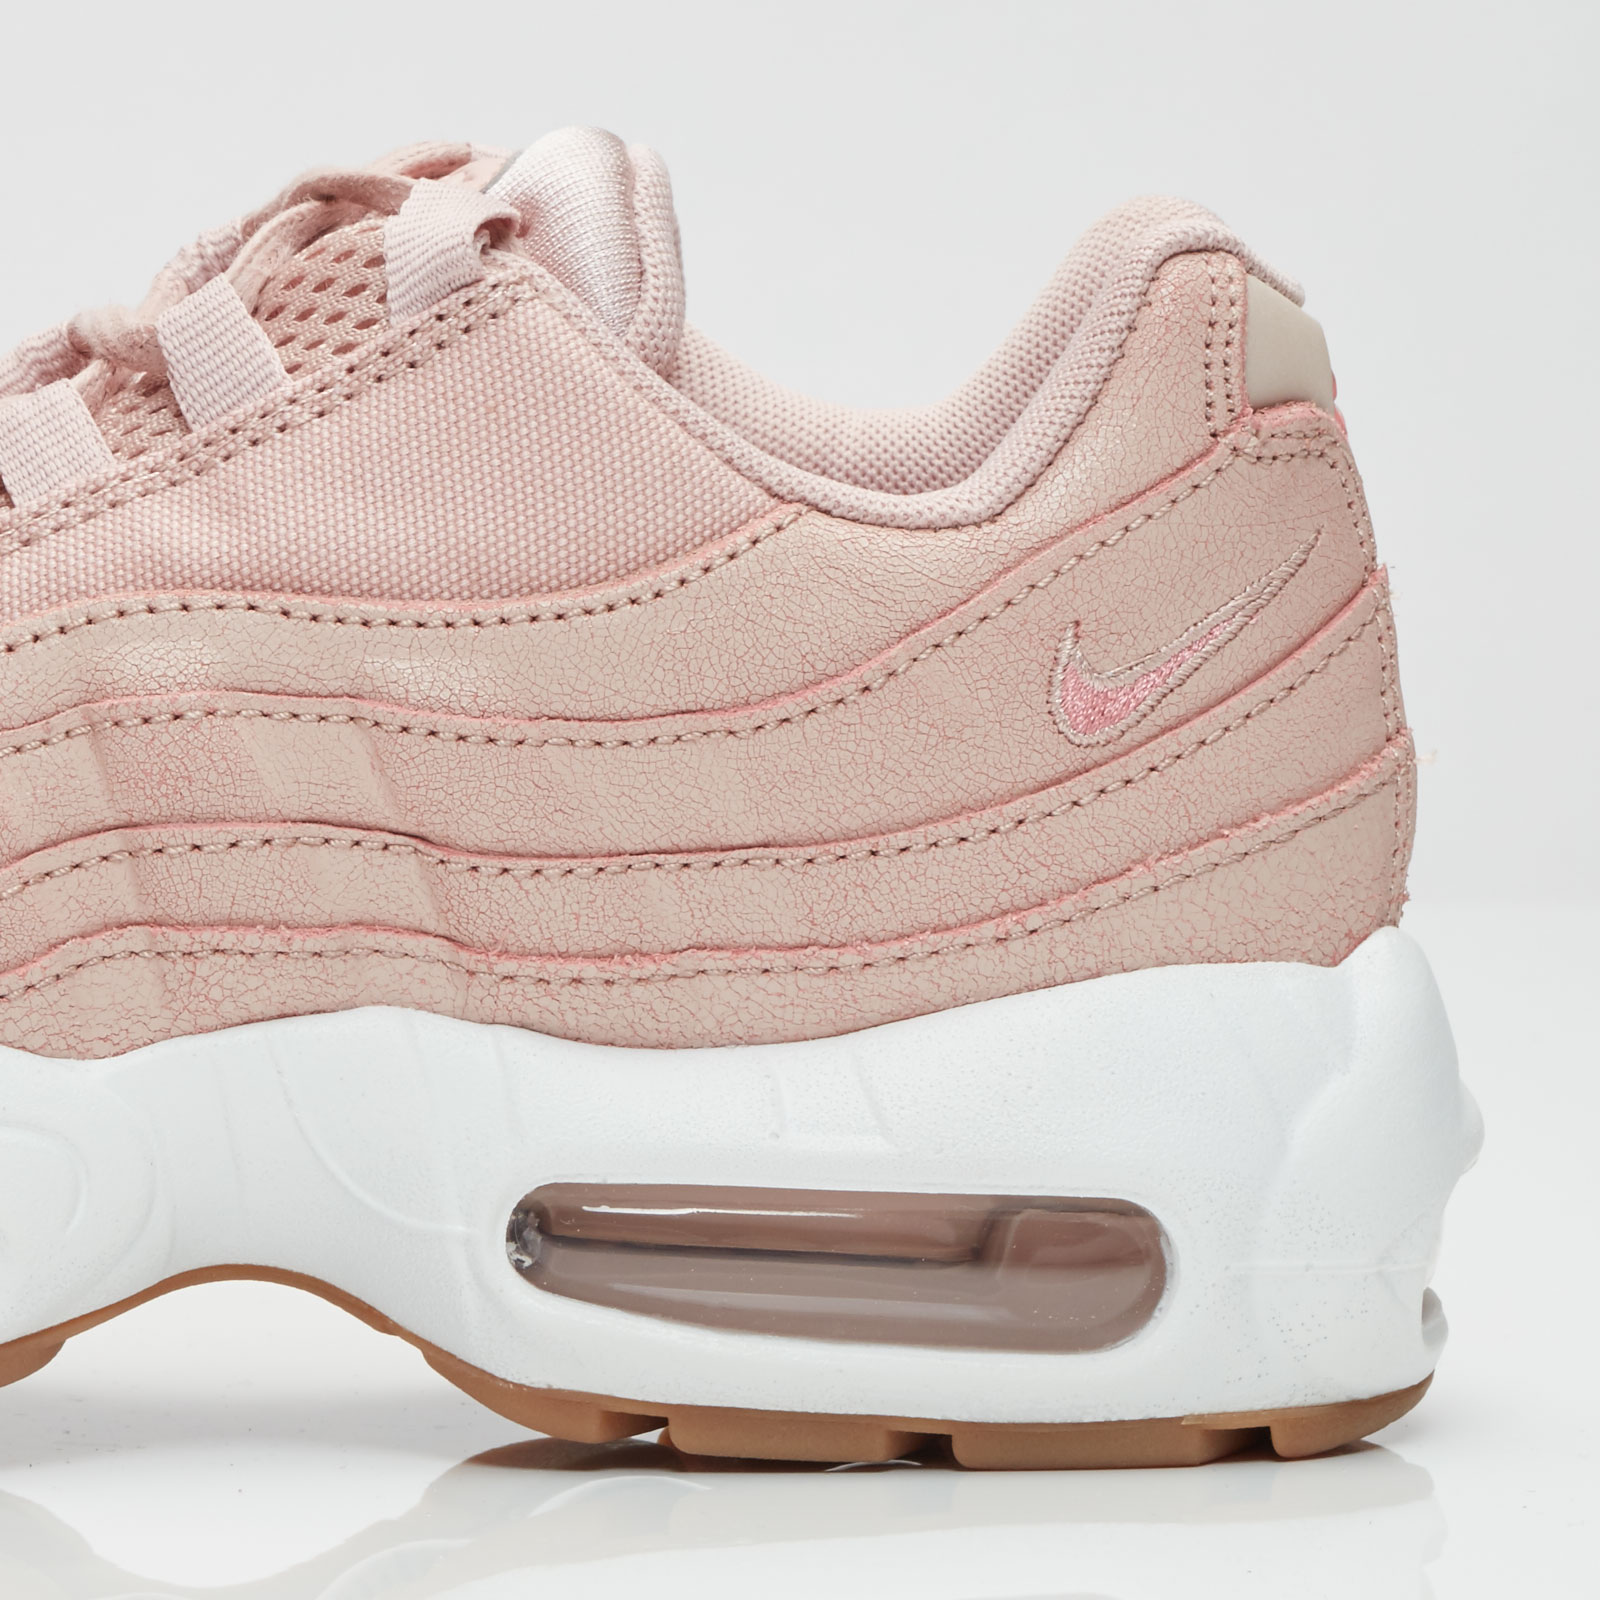 size 40 28df2 251fa Nike Wmns Air Max 95 Premium - 807443-600 - Sneakersnstuff   sneakers    streetwear online since 1999